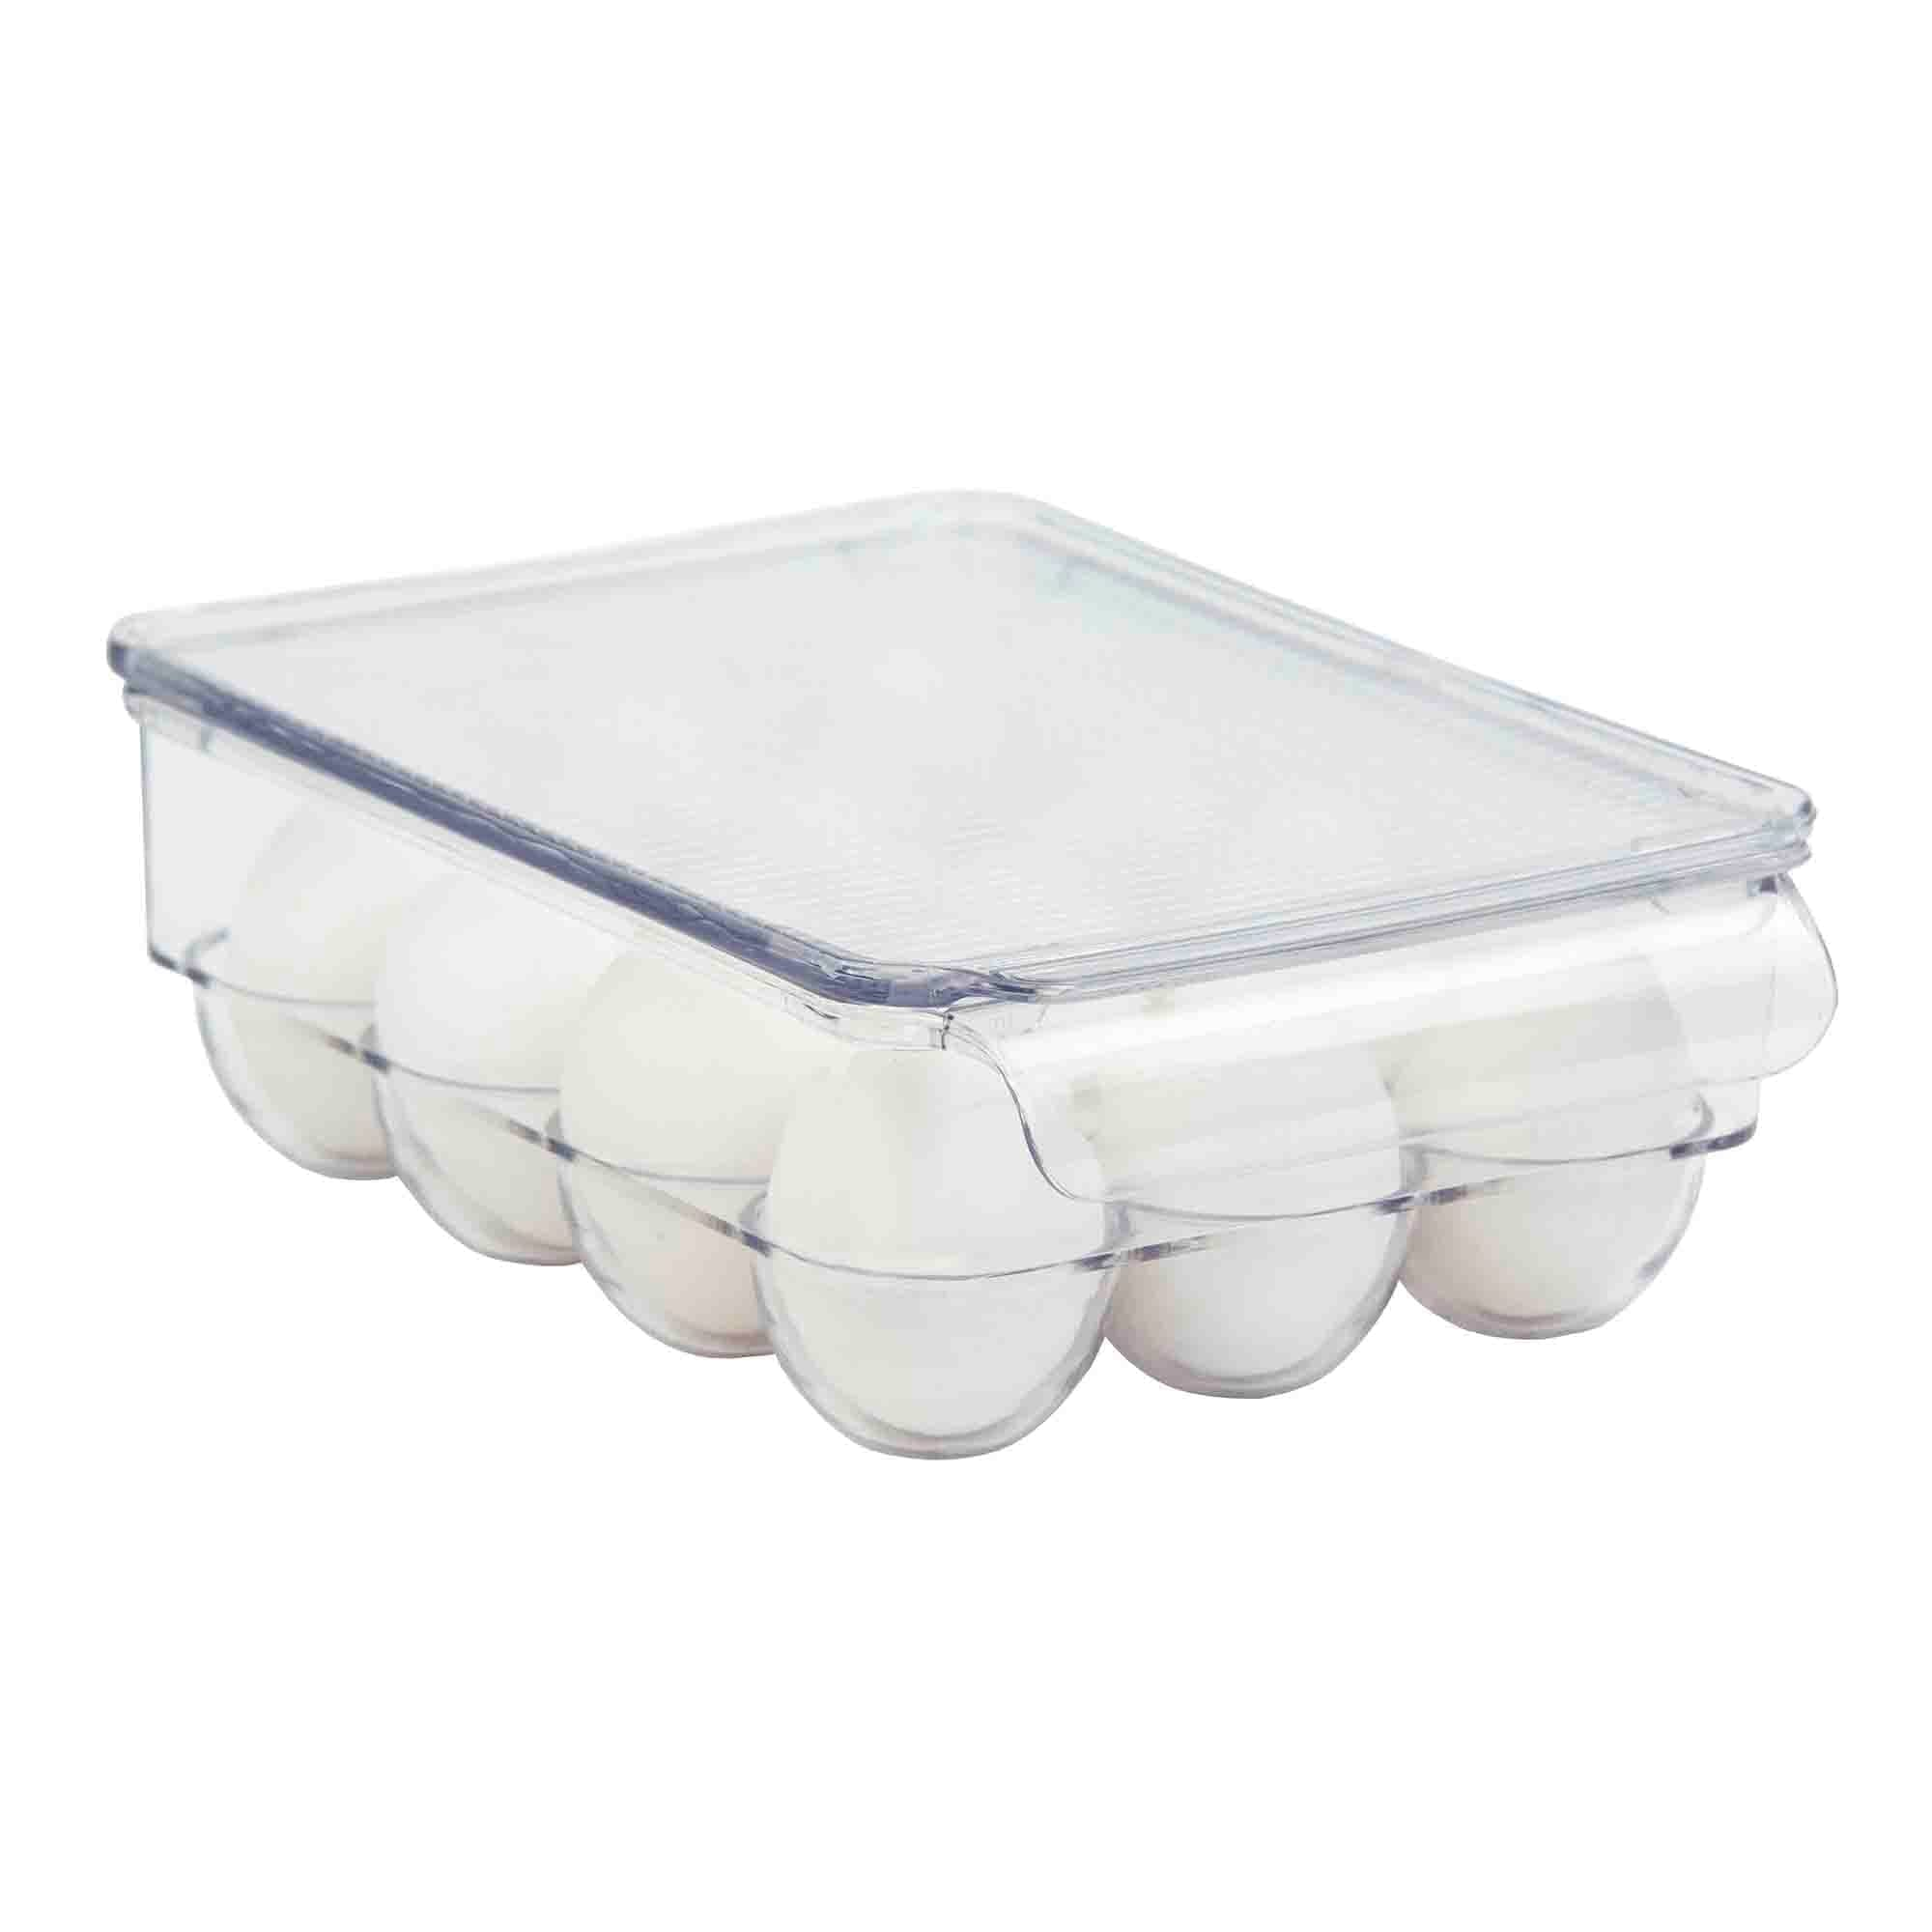 Plastic Fridge Bin 12 -Egg Holder, Clear